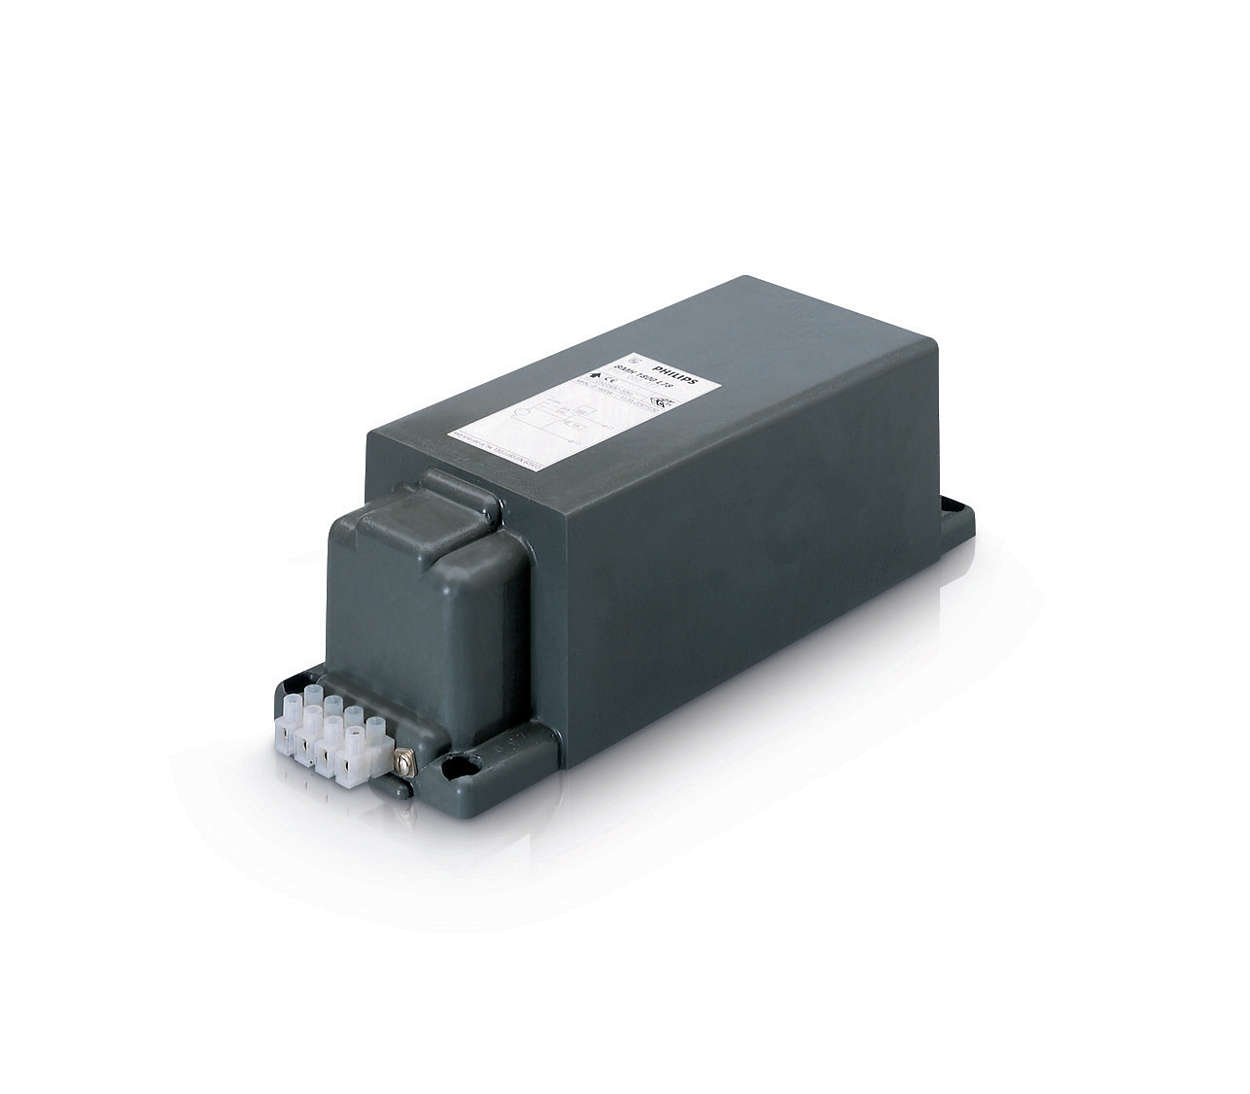 HID-HighPower for SON/MH/HPL/HPI